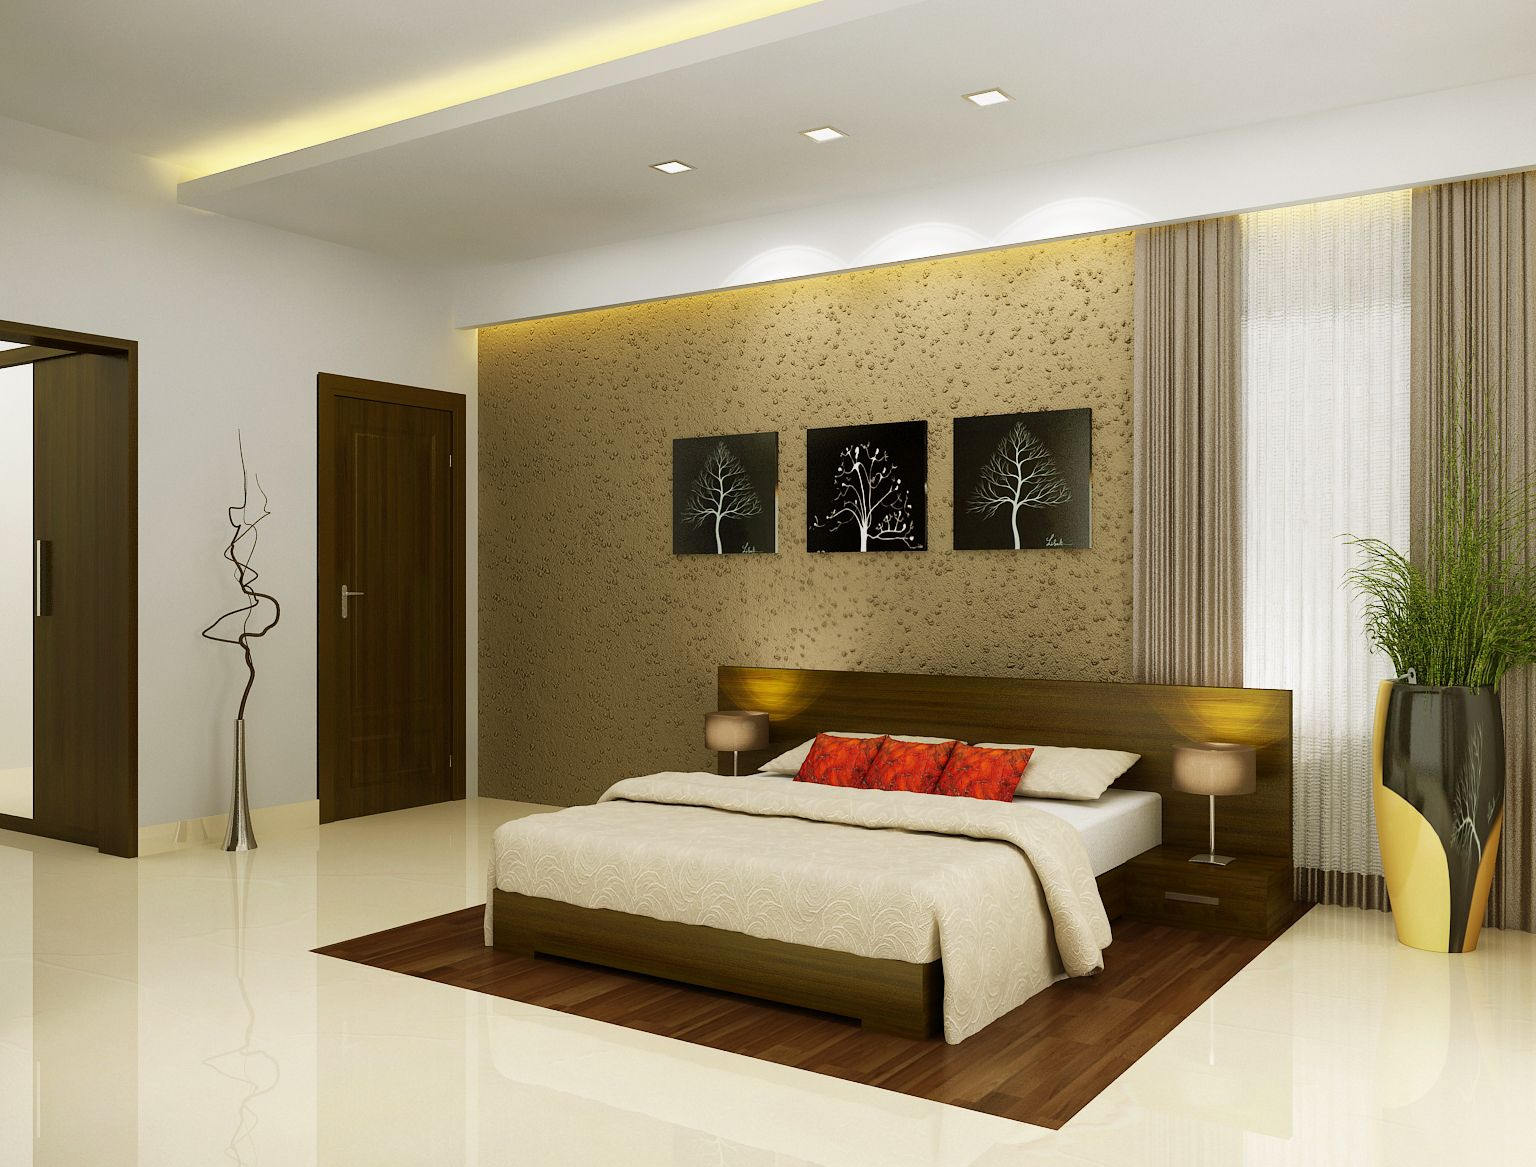 Merveilleux Bedroom Design Kerala Style · Home Interior ...